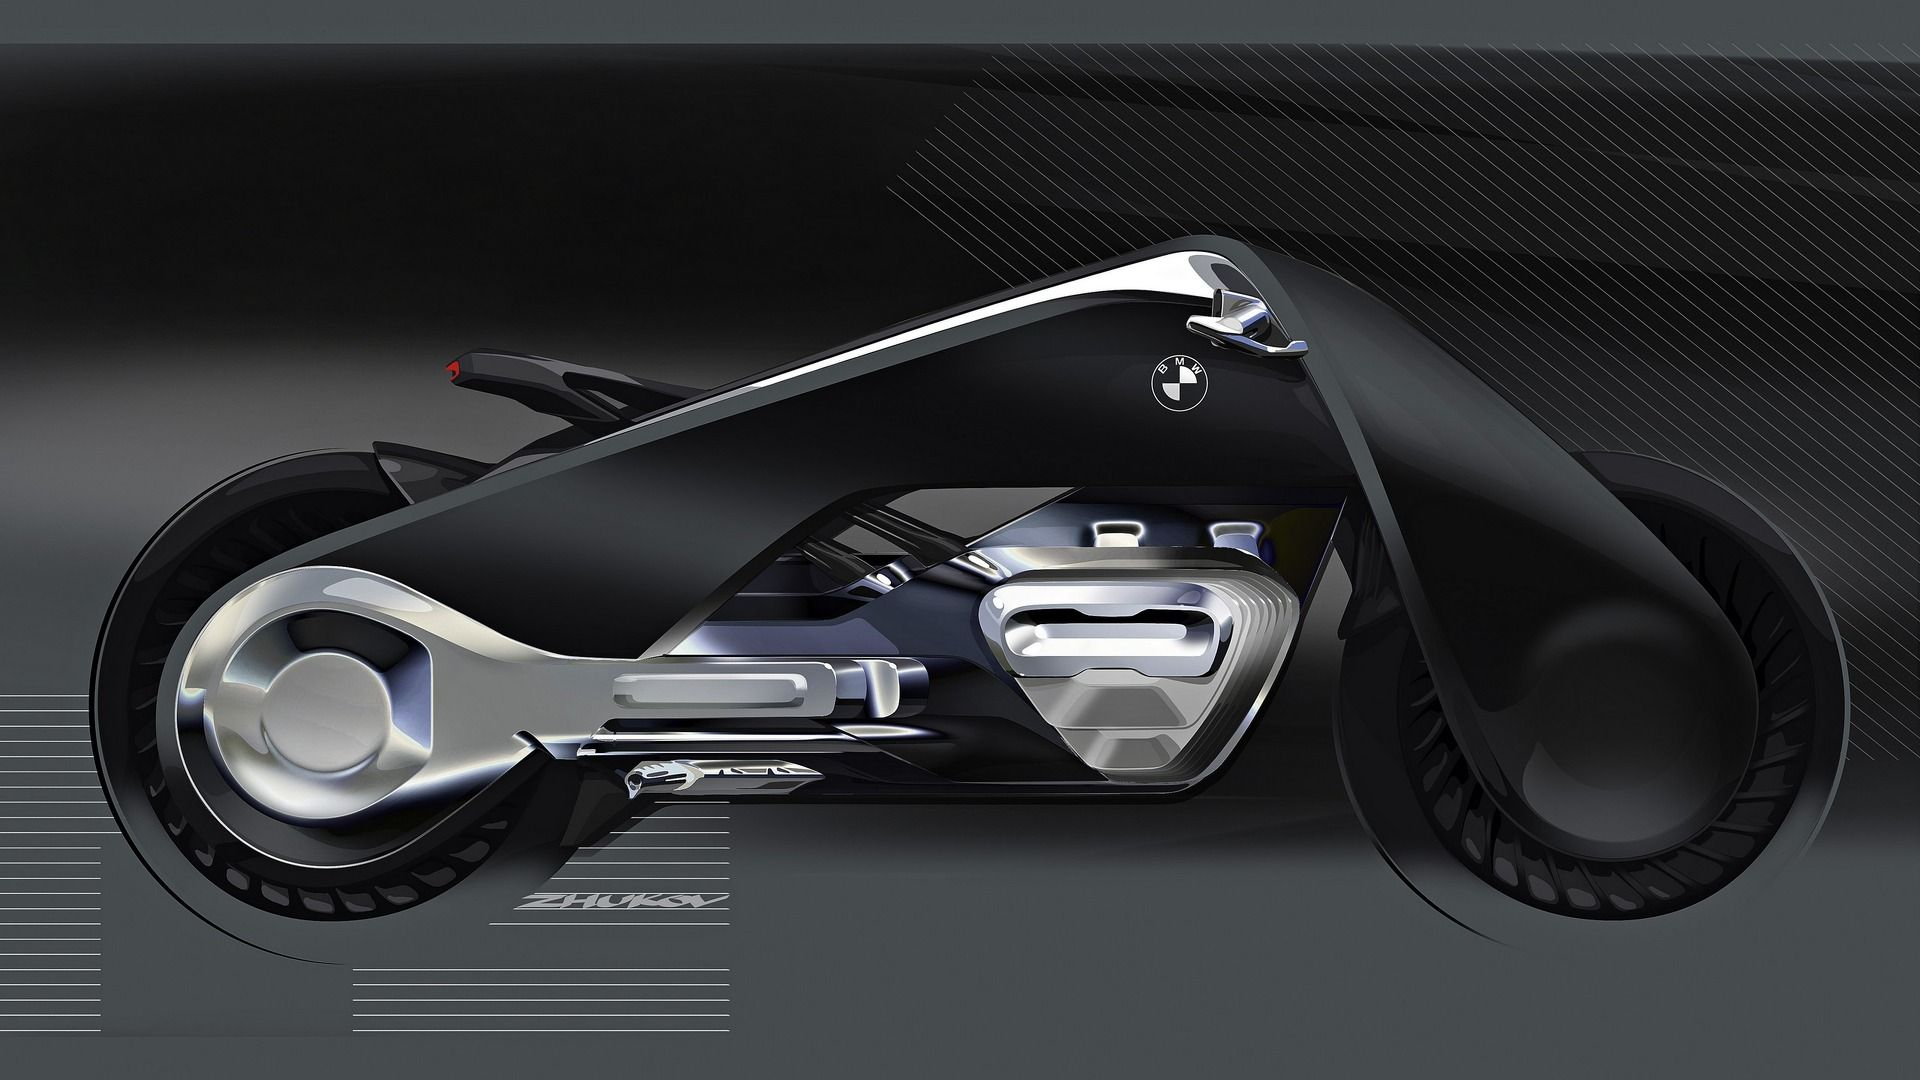 Bmw Motorrad Vision Next 100 Photo Gallery Motor1 Com Speed